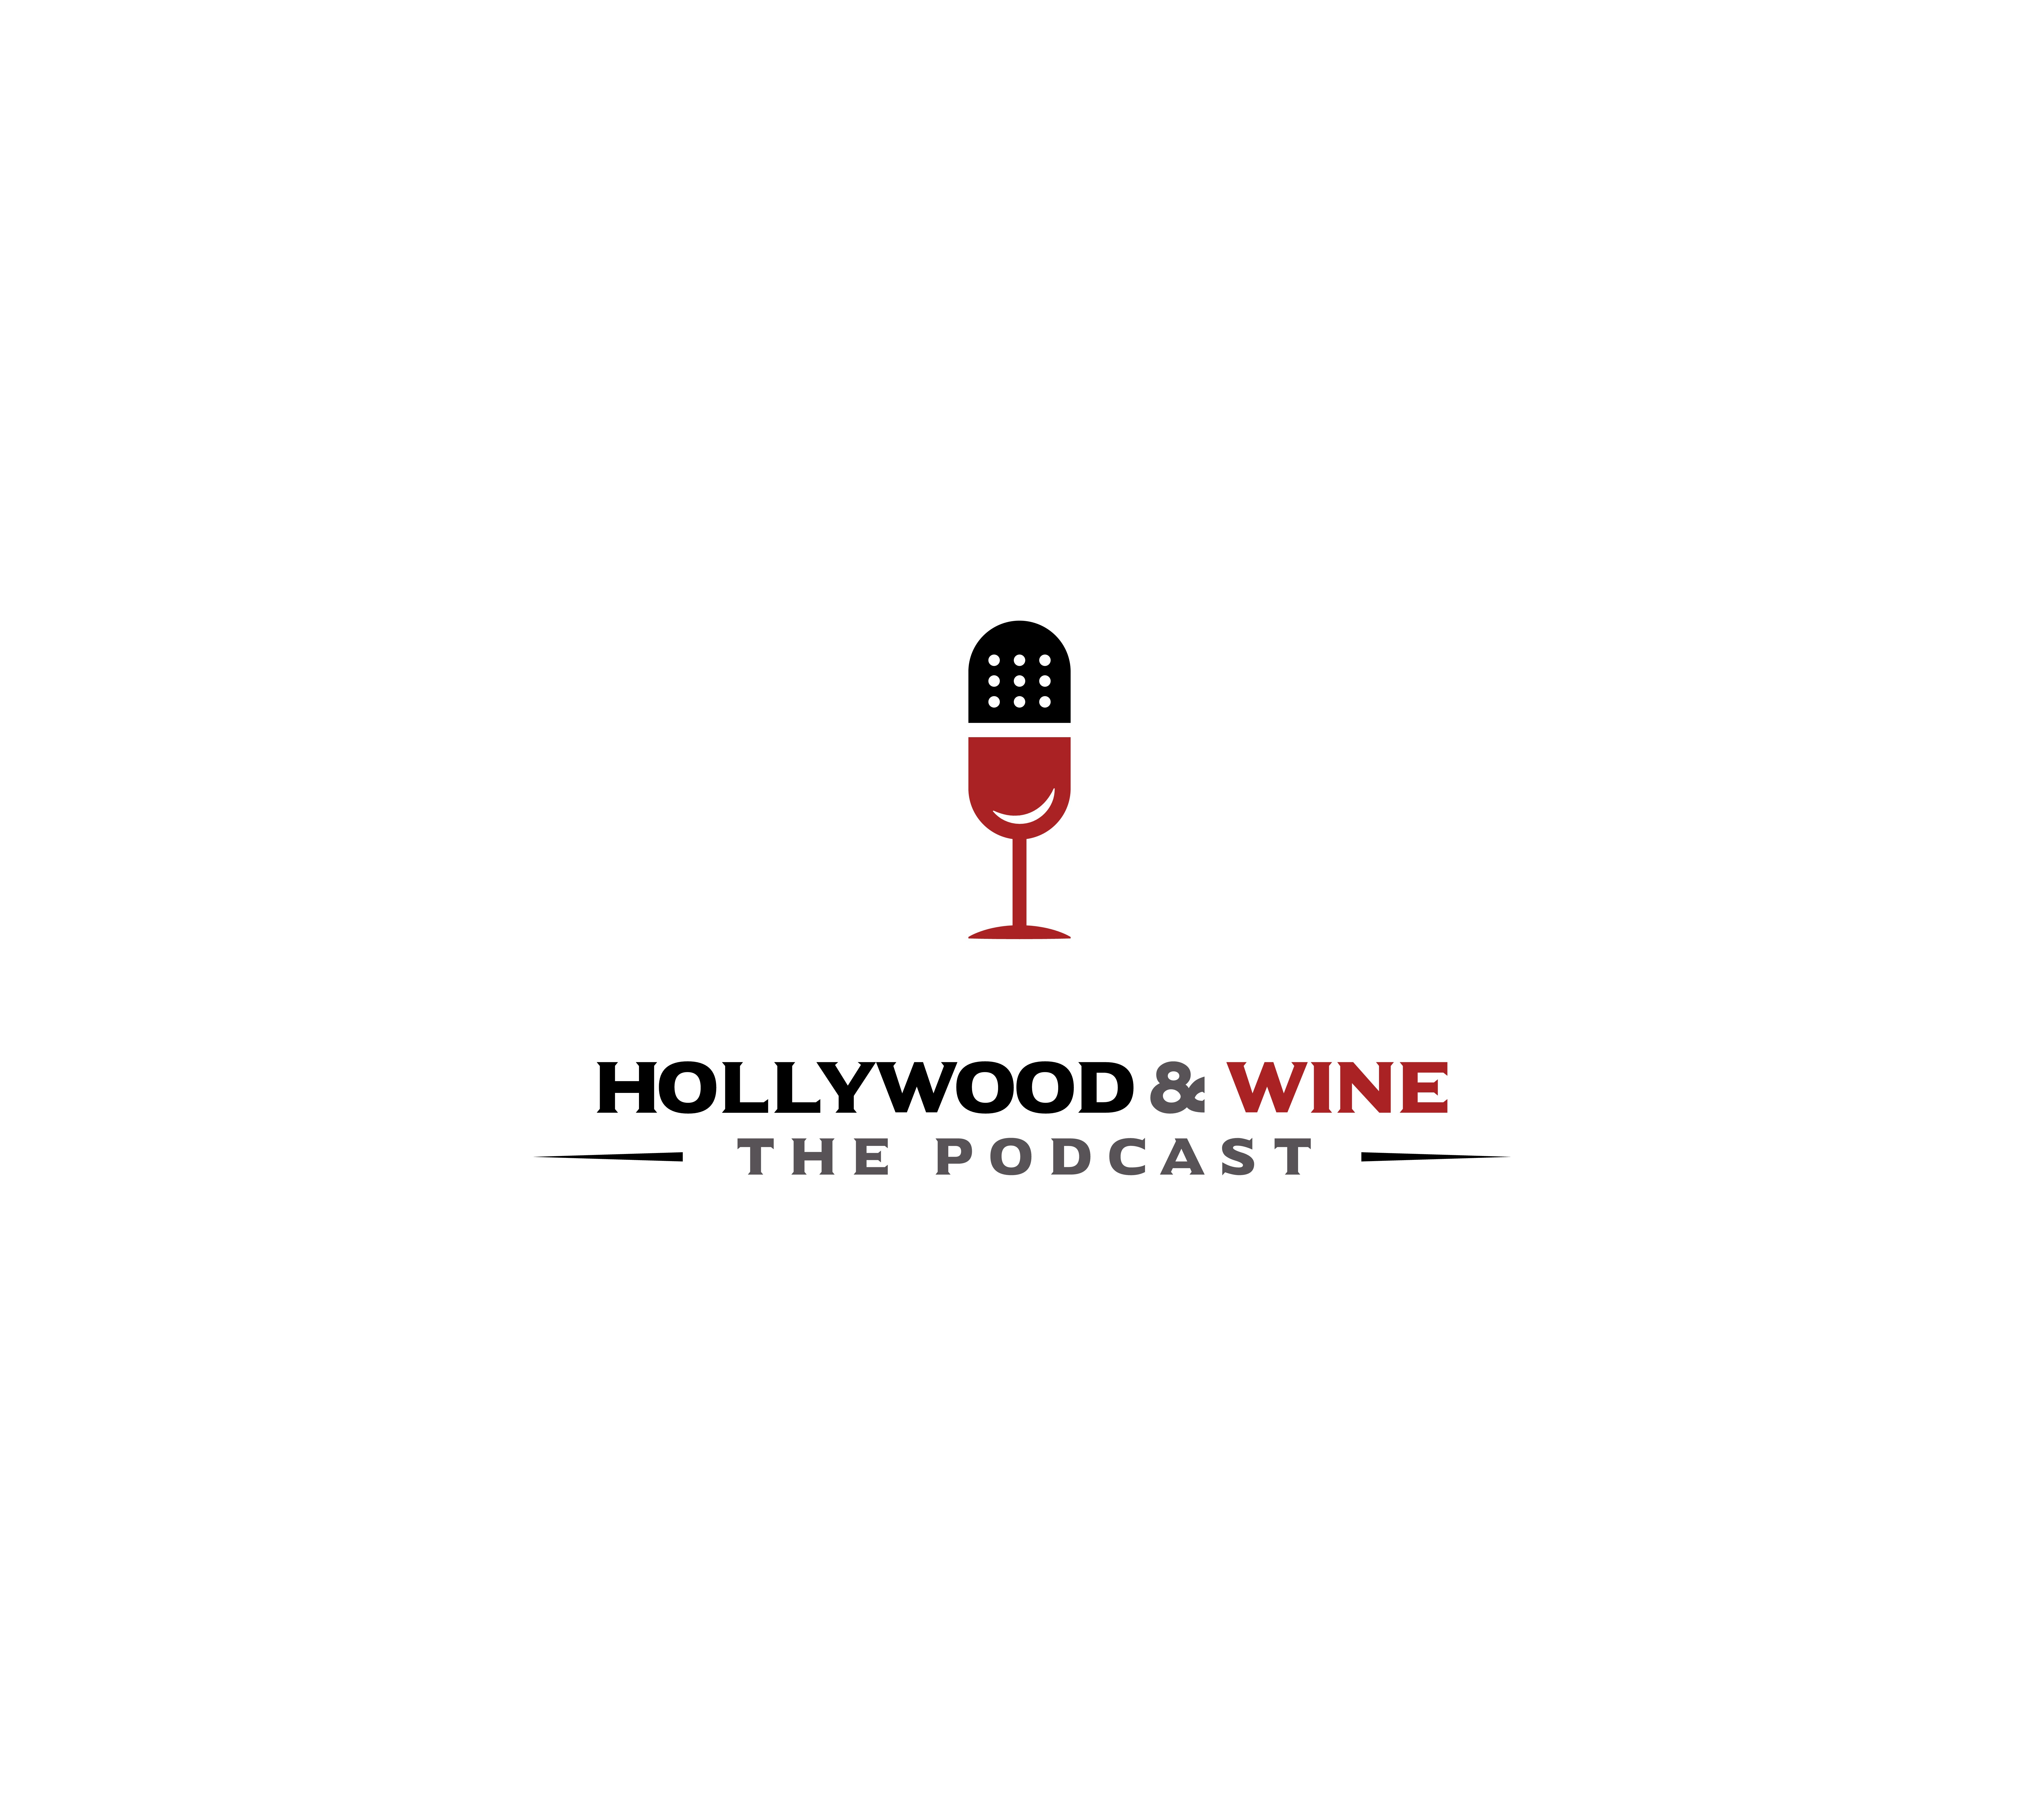 Create a logo for a podcast that mixes the tasting of wine with the business of Hollywood